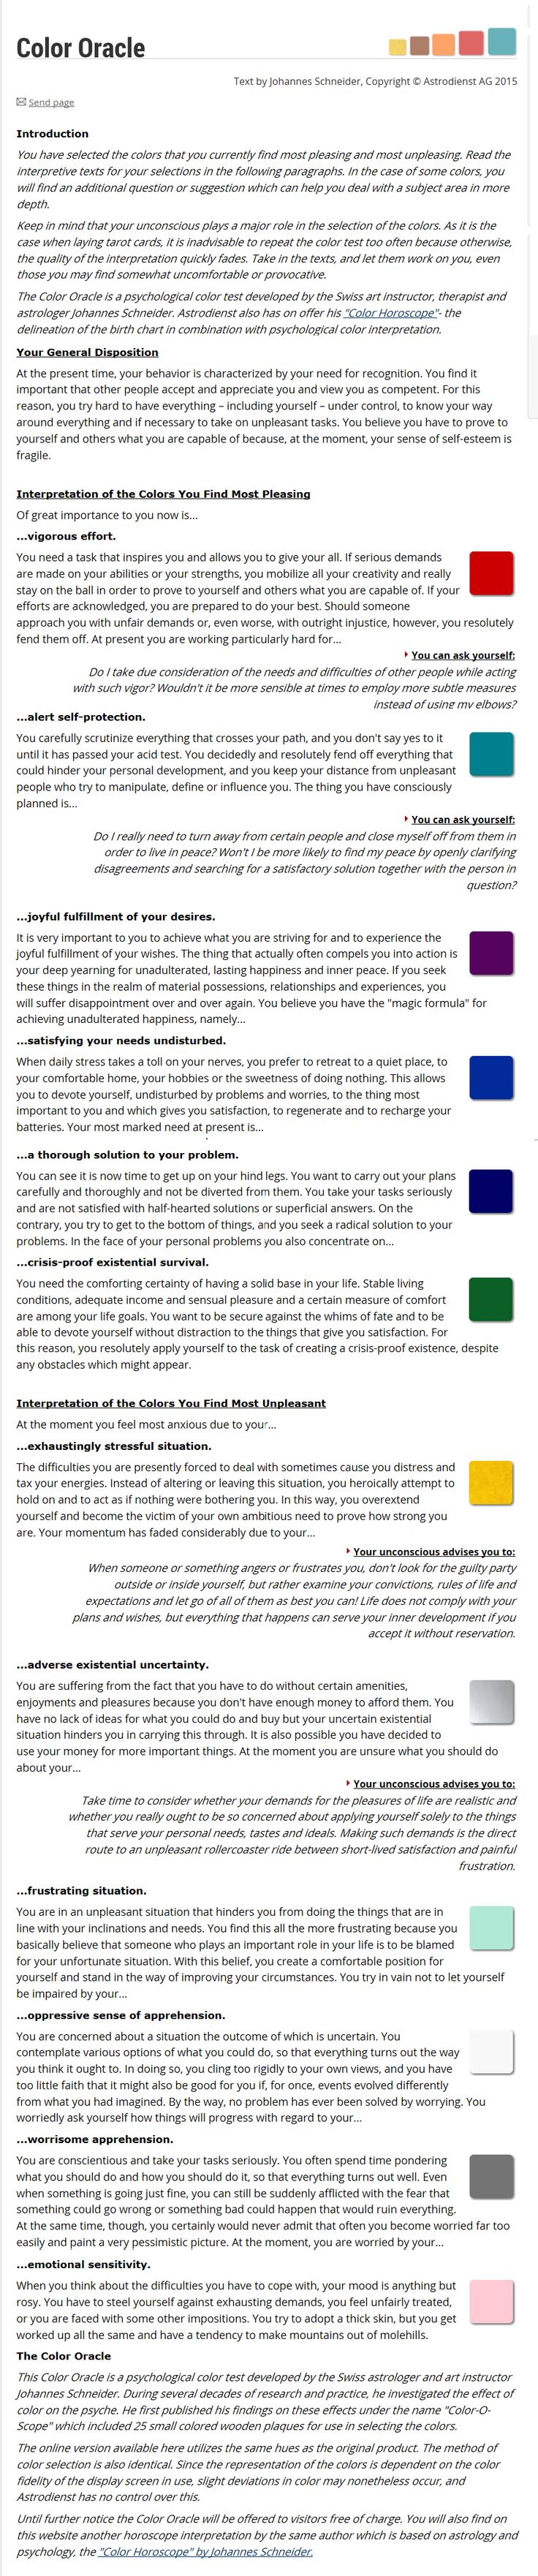 28 best colors meanings moods symbolism images on pinterest color oracle test wow thats all im going to say nvjuhfo Gallery